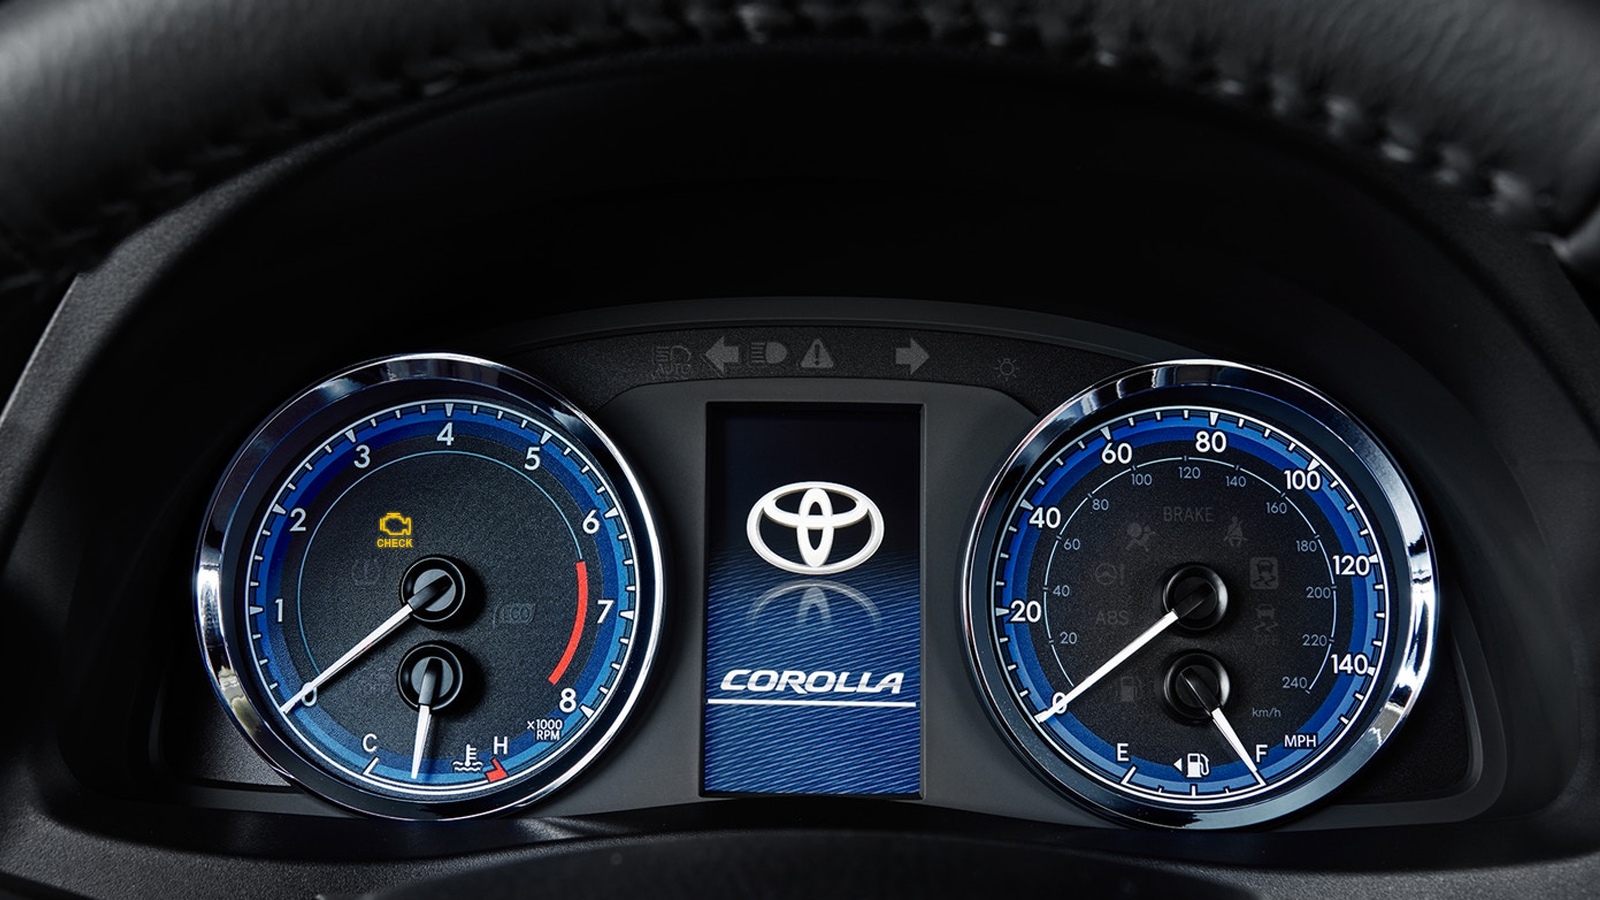 Why is My Check Engine Light On? - Peruzzi Toyota Blog